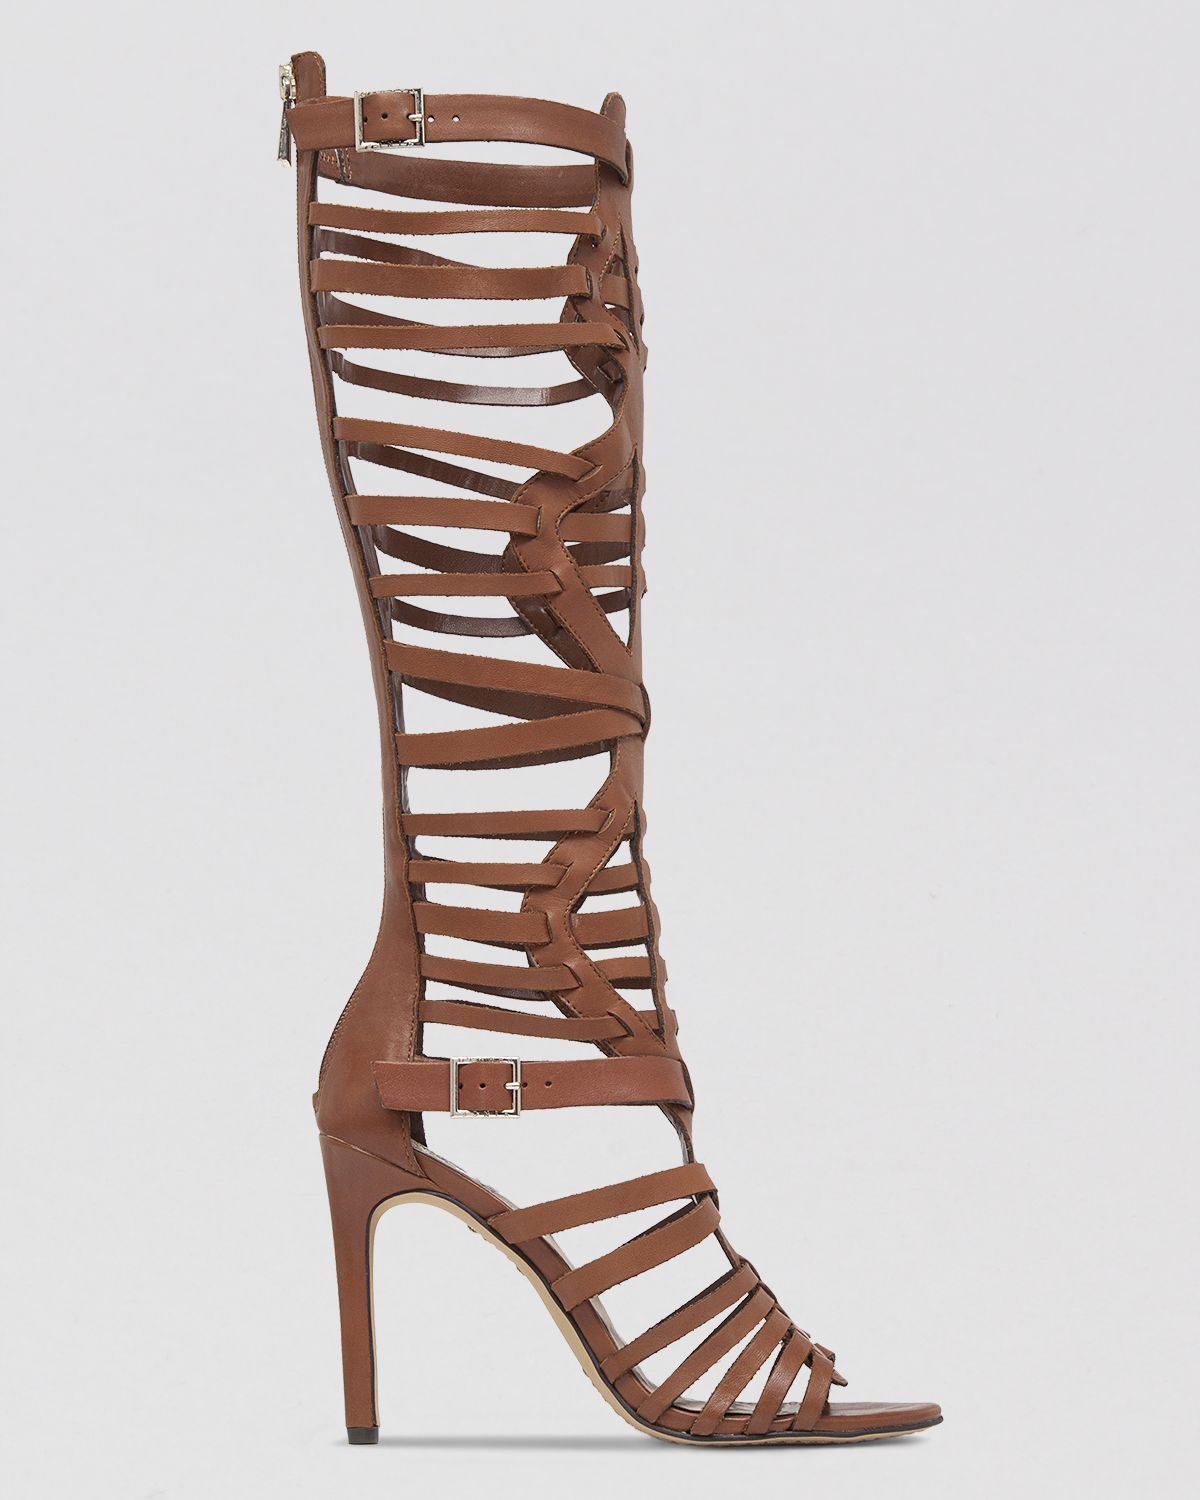 732c310c96d Vince Camuto Gladiator Sandals - Kase High Heel in Black - Lyst